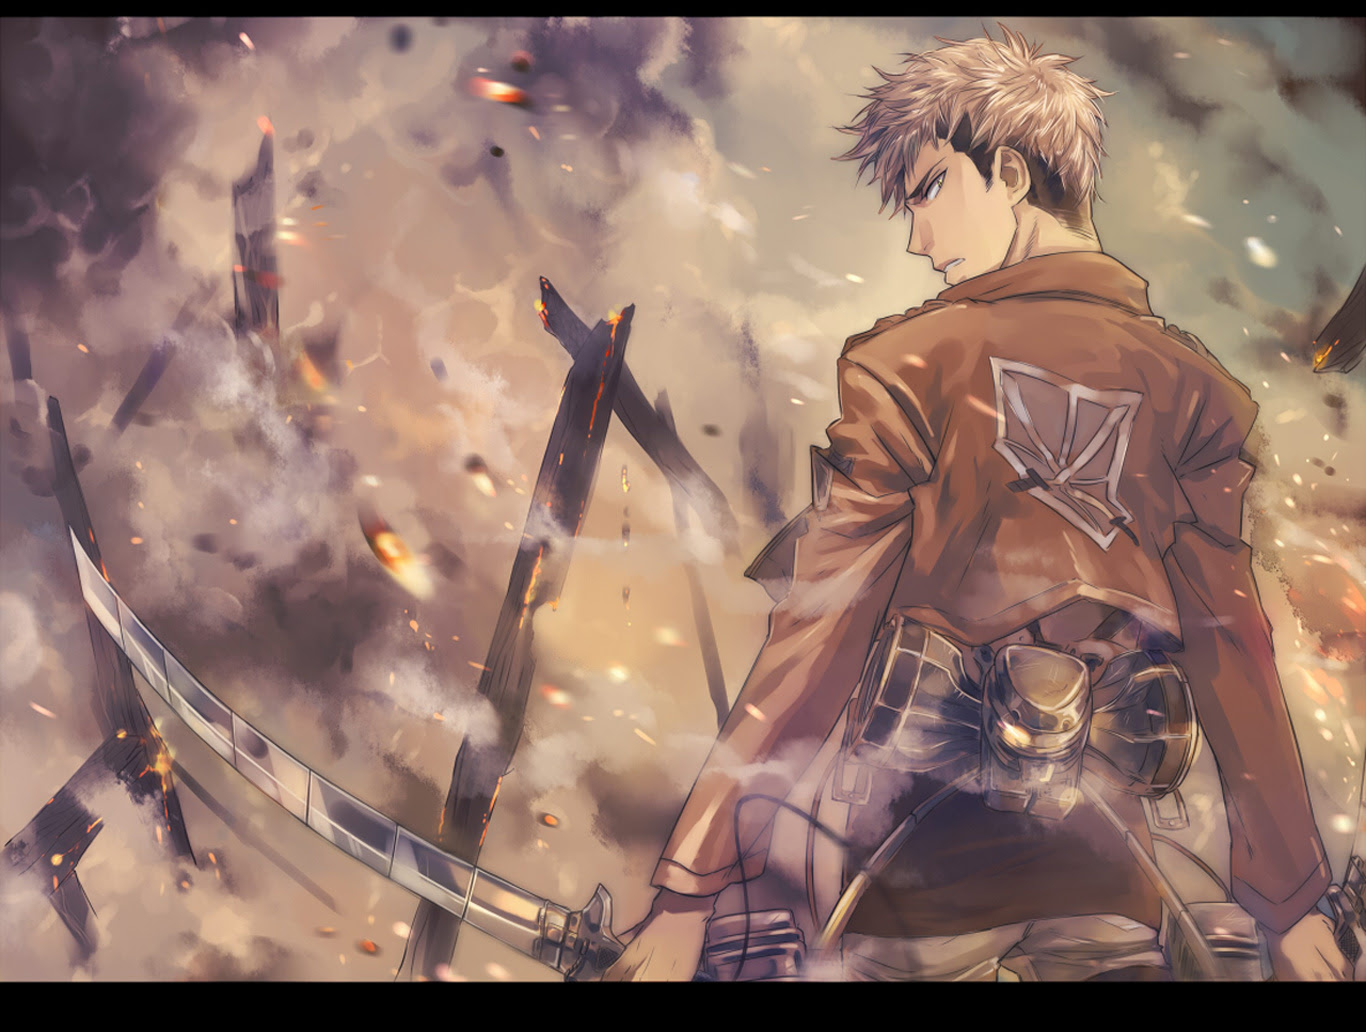 Aot Wallpapers Shingeki No Kyojin Attack On Titan Photo 36001020 Fanpop Page 5